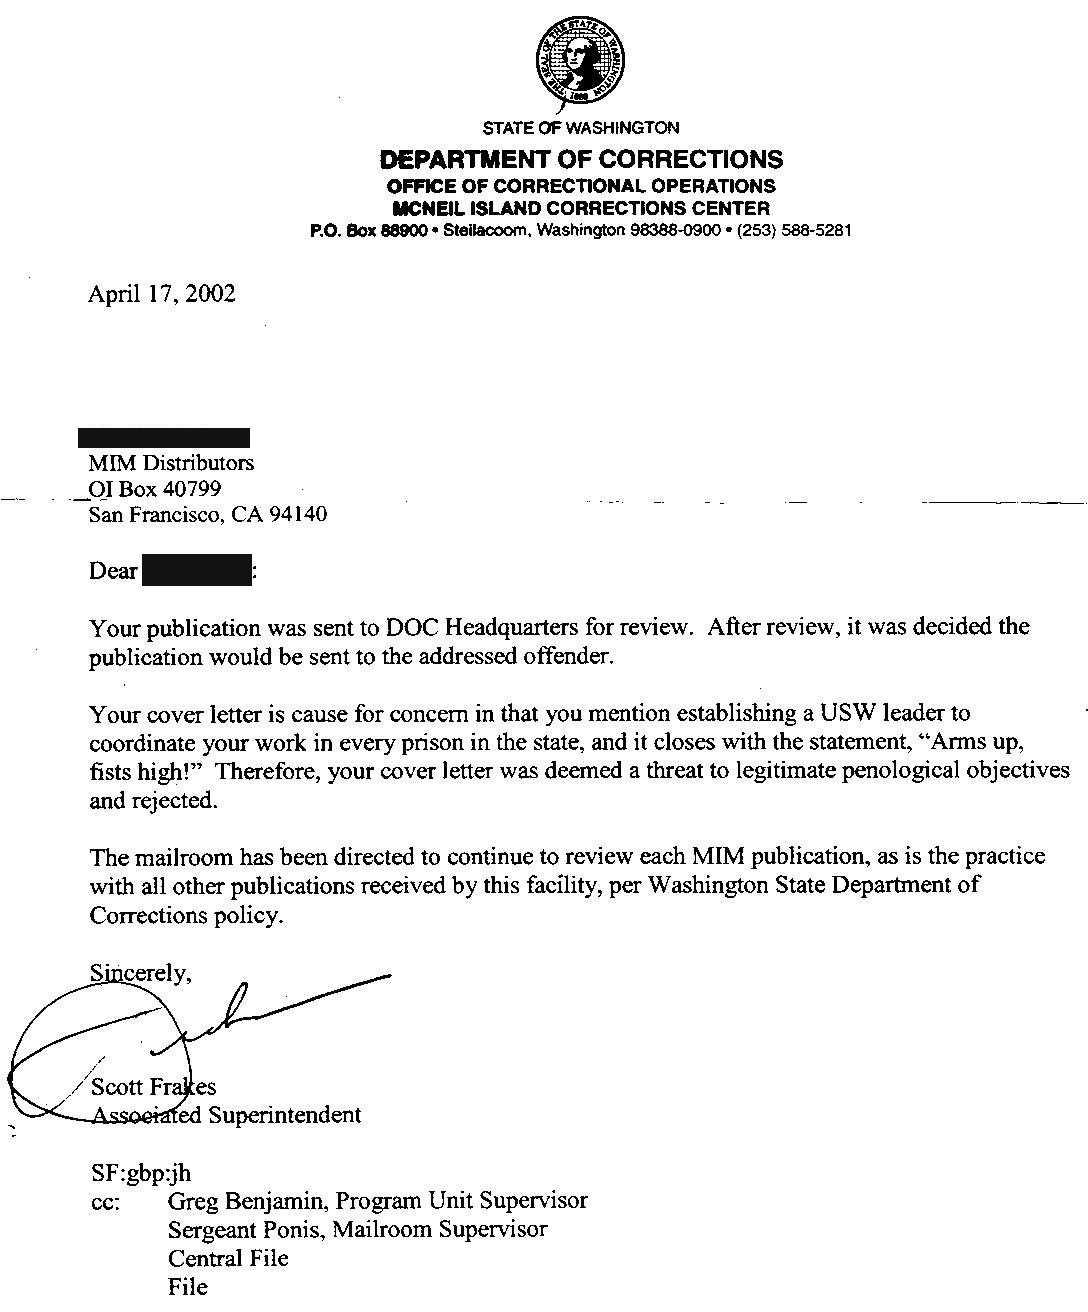 ... 2002 Superintendent Says Cover Letter Denied Entry ...